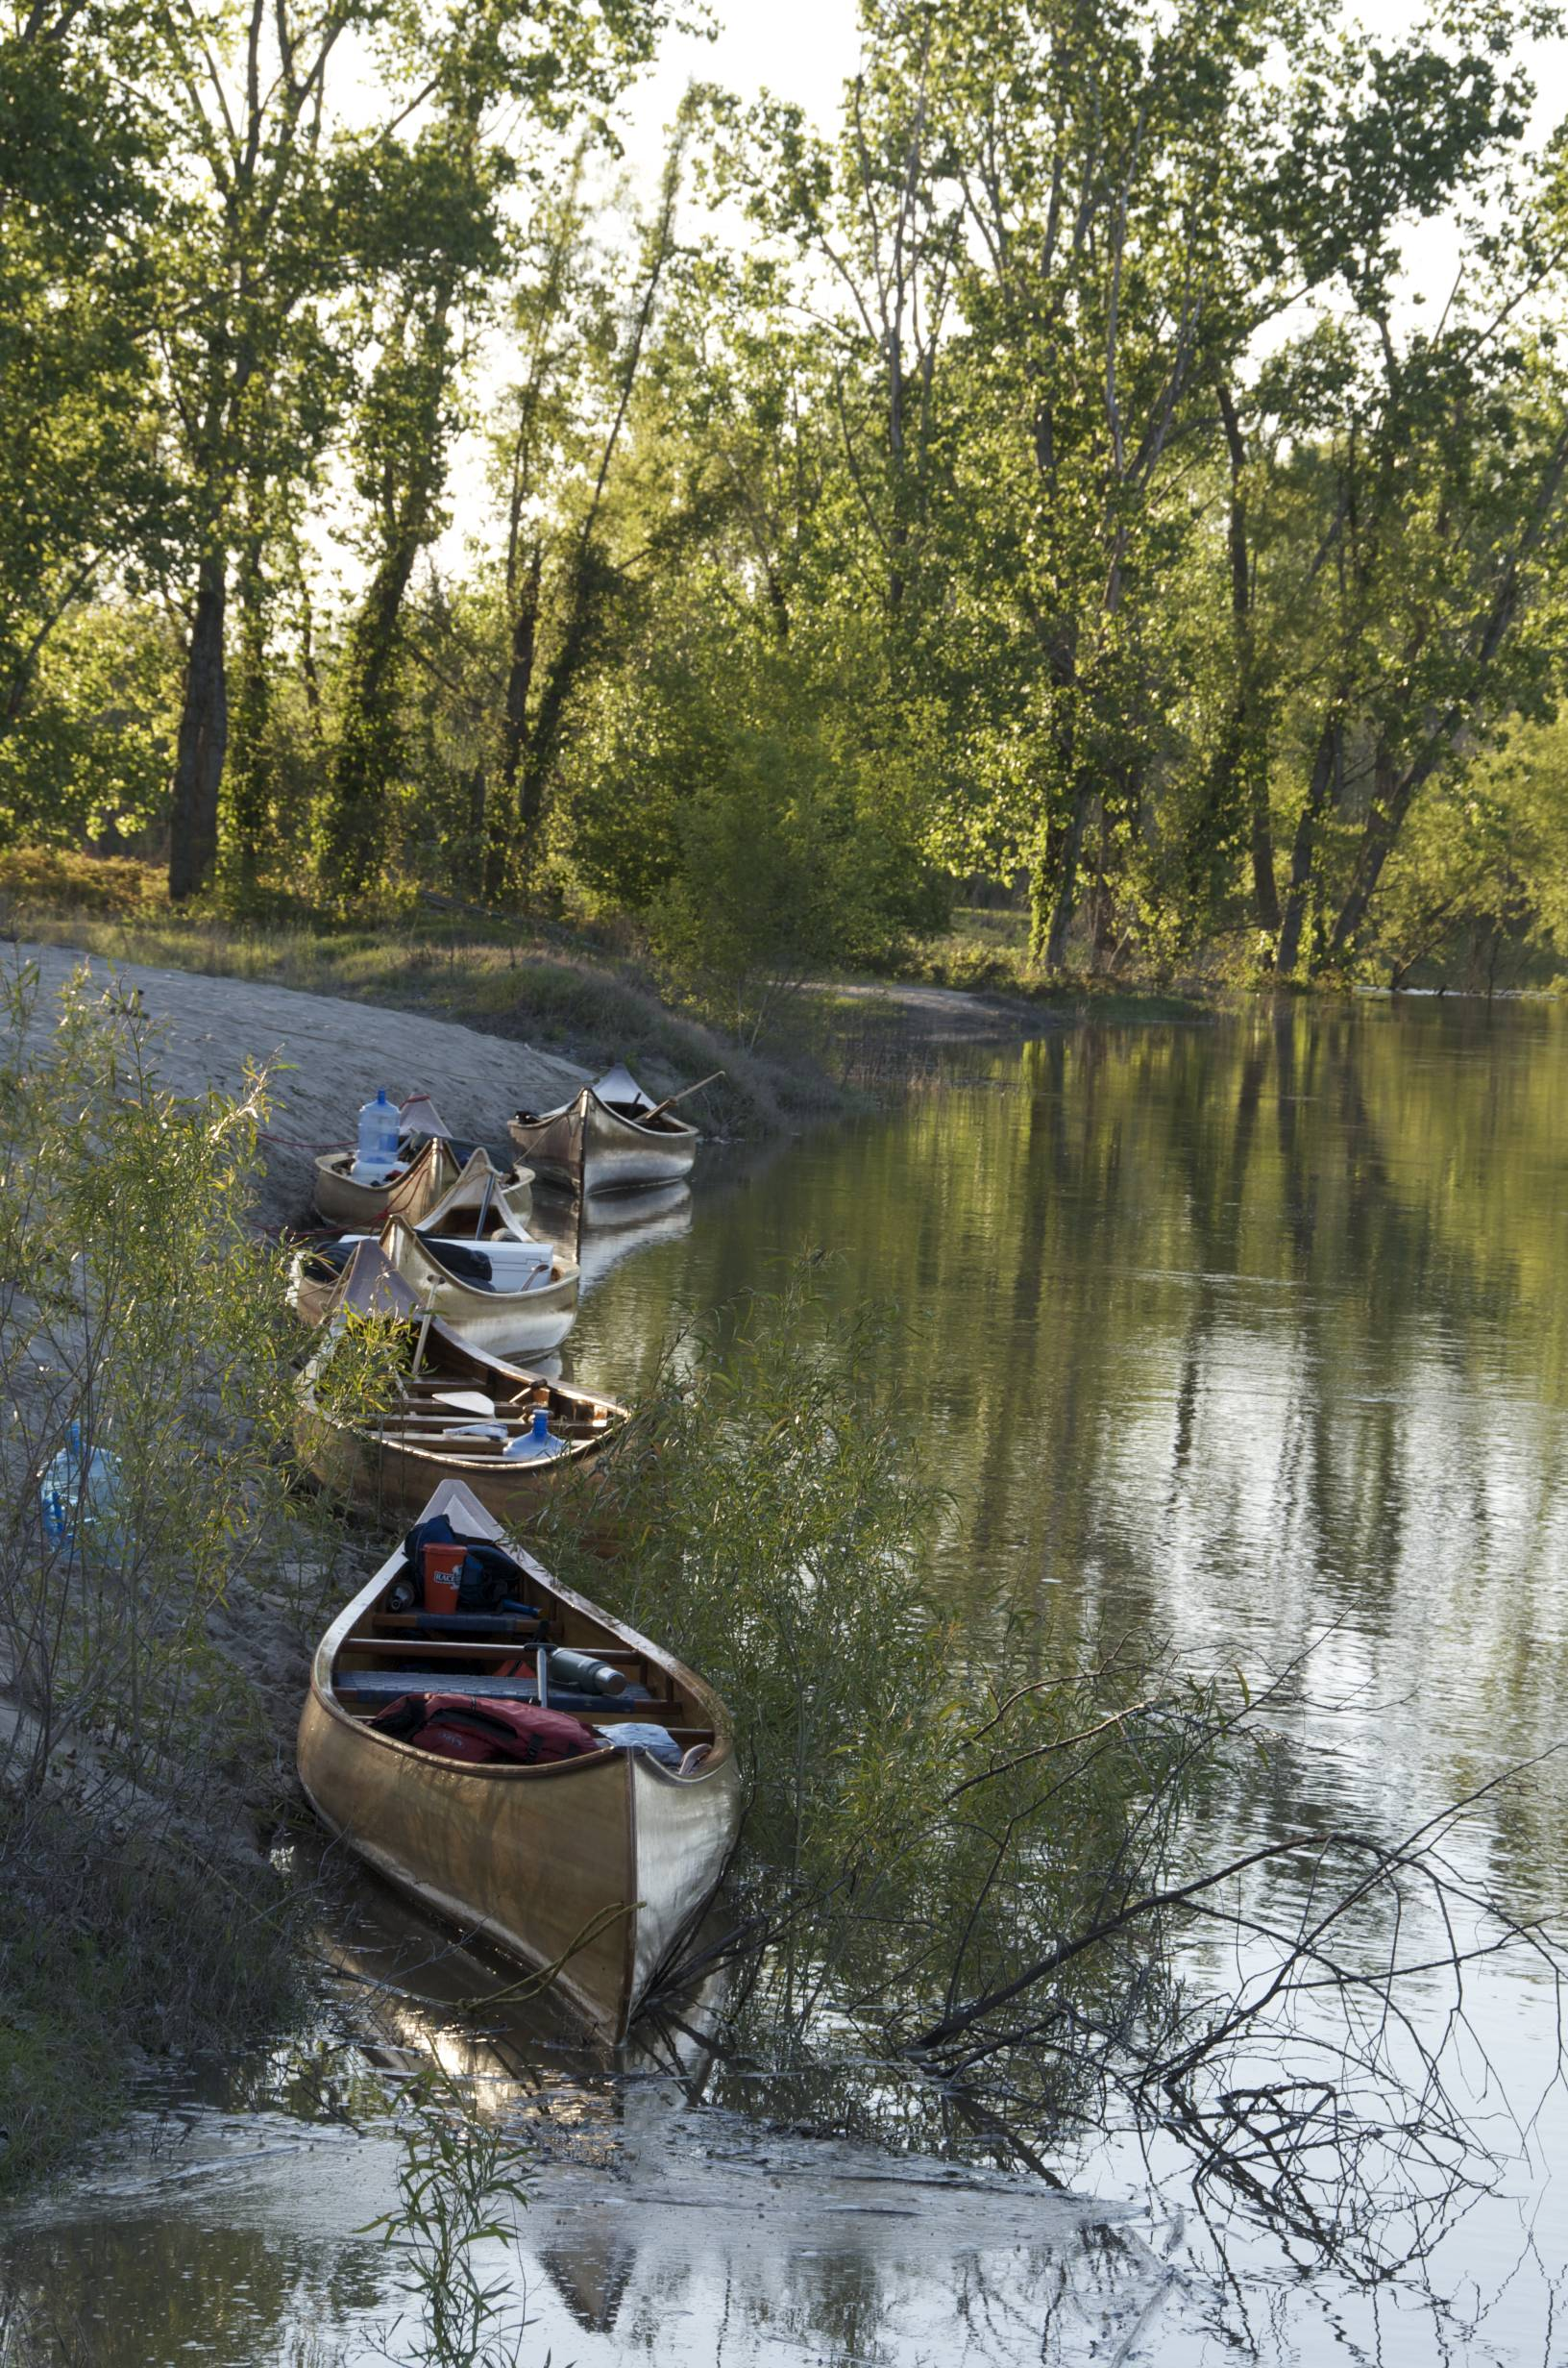 Getting people on the river. Five empty canoes sit at the shore. Image courtesy of John Ruskey.